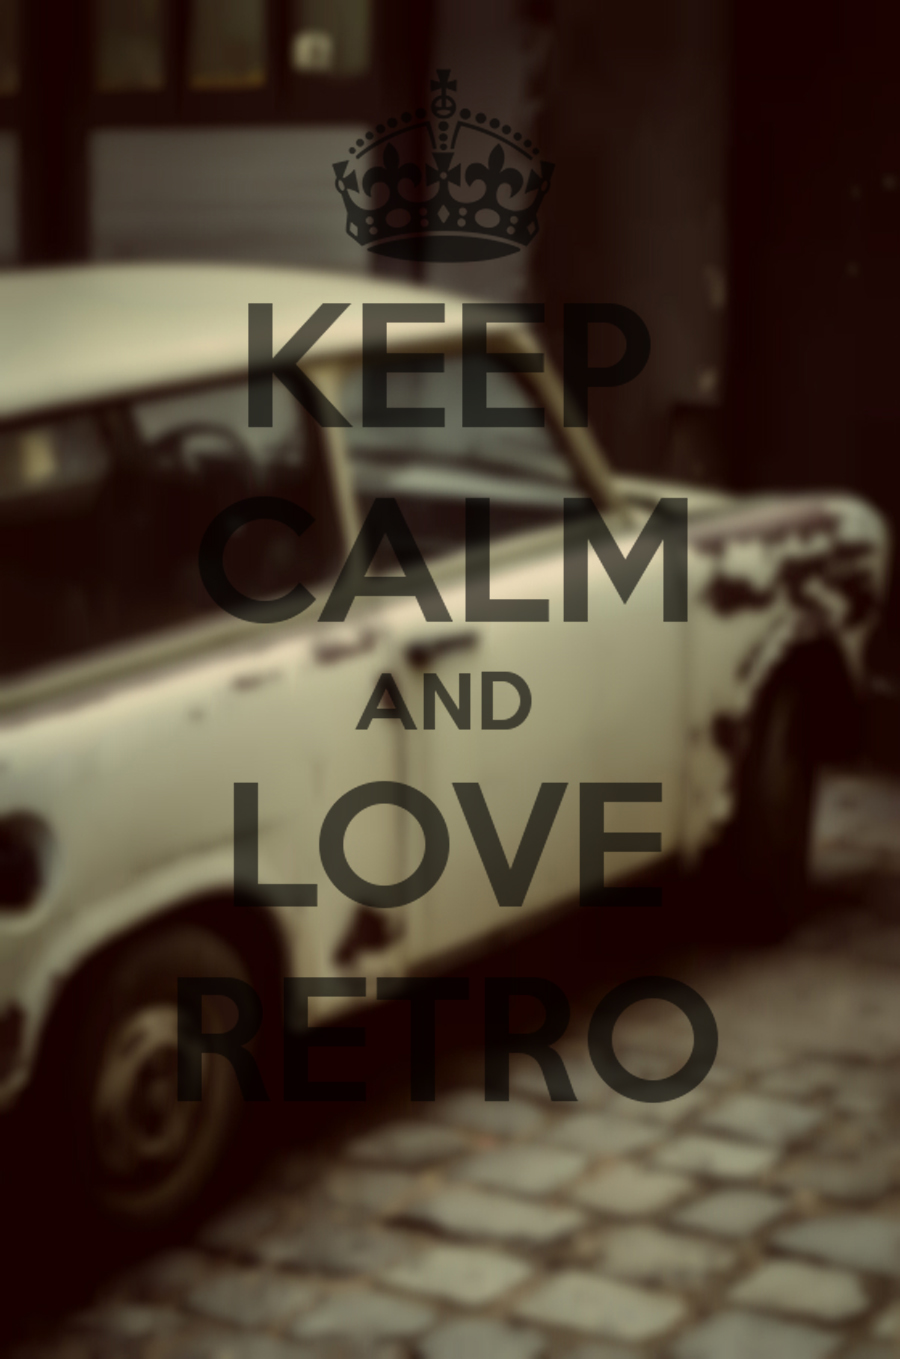 keep calm and love retro letthemwear